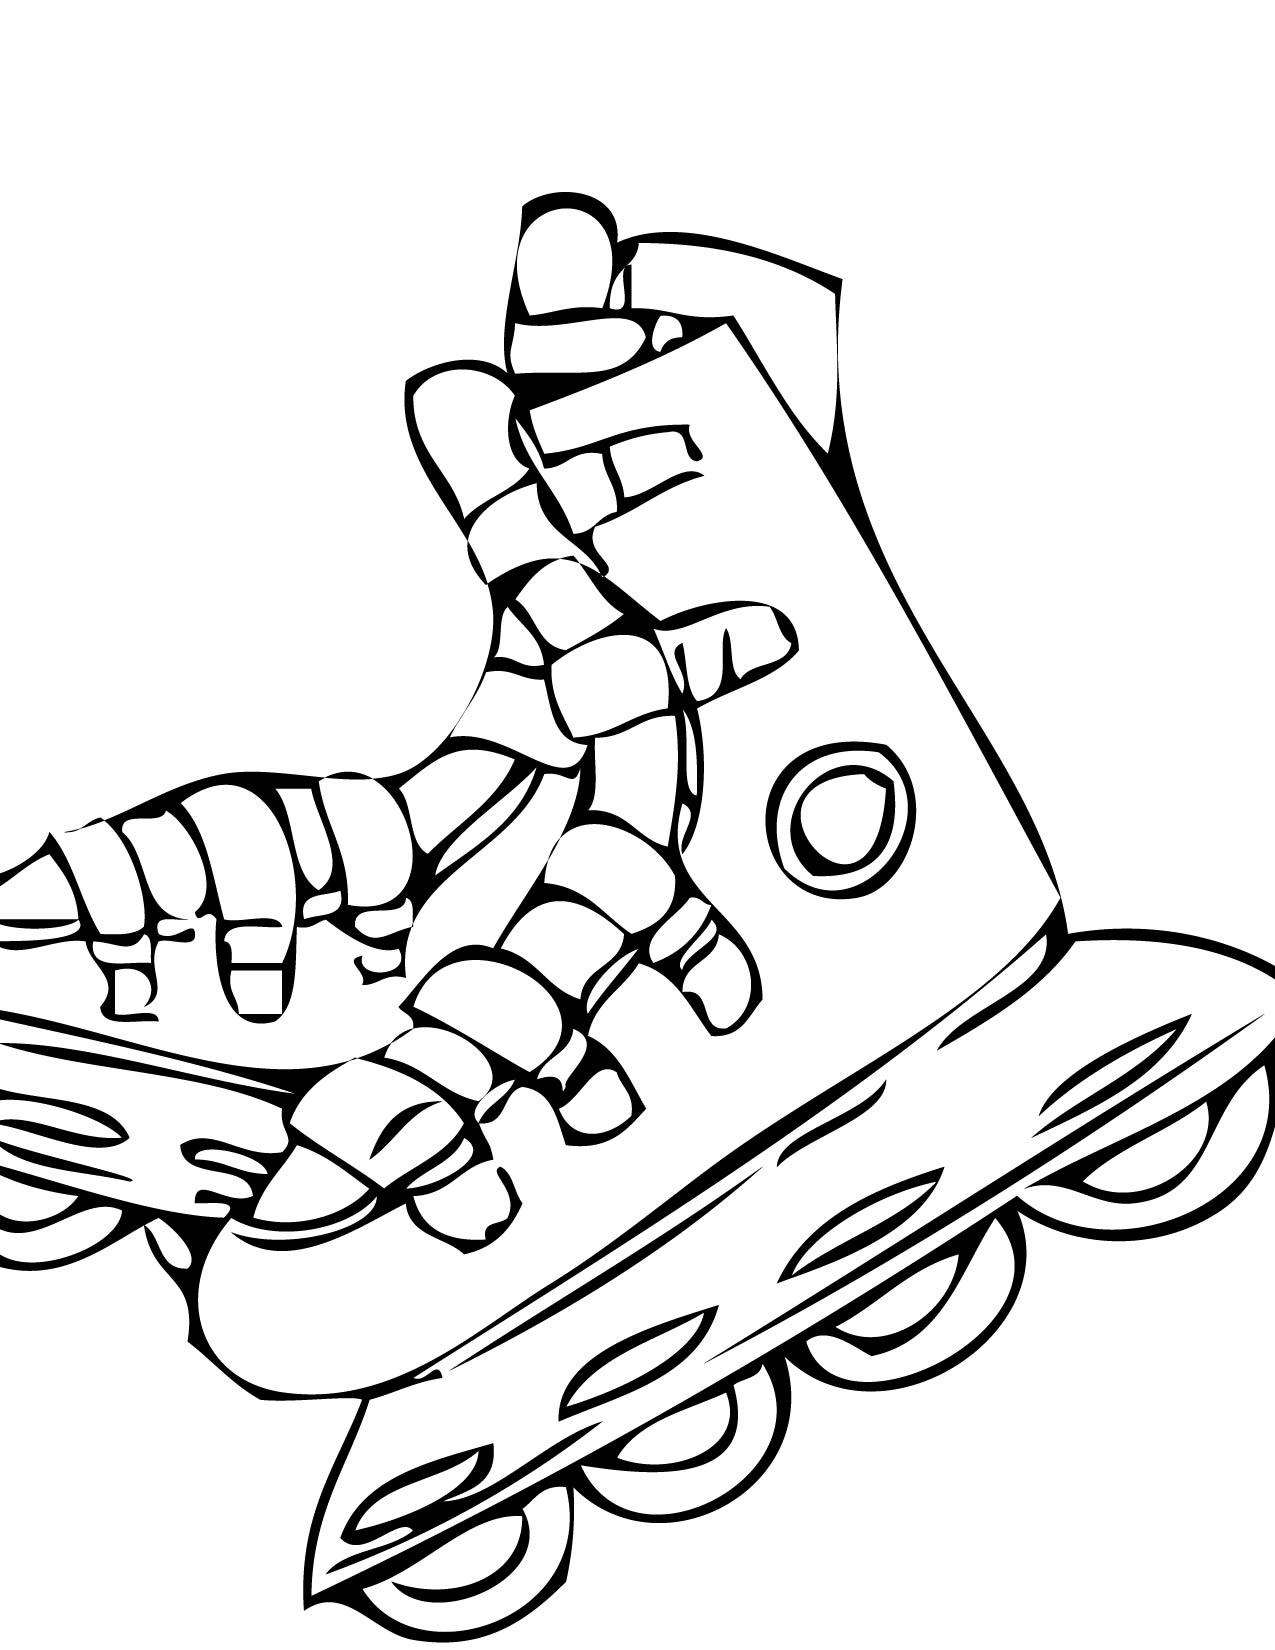 Roller Skate Coloring Page Sketch Coloring Page